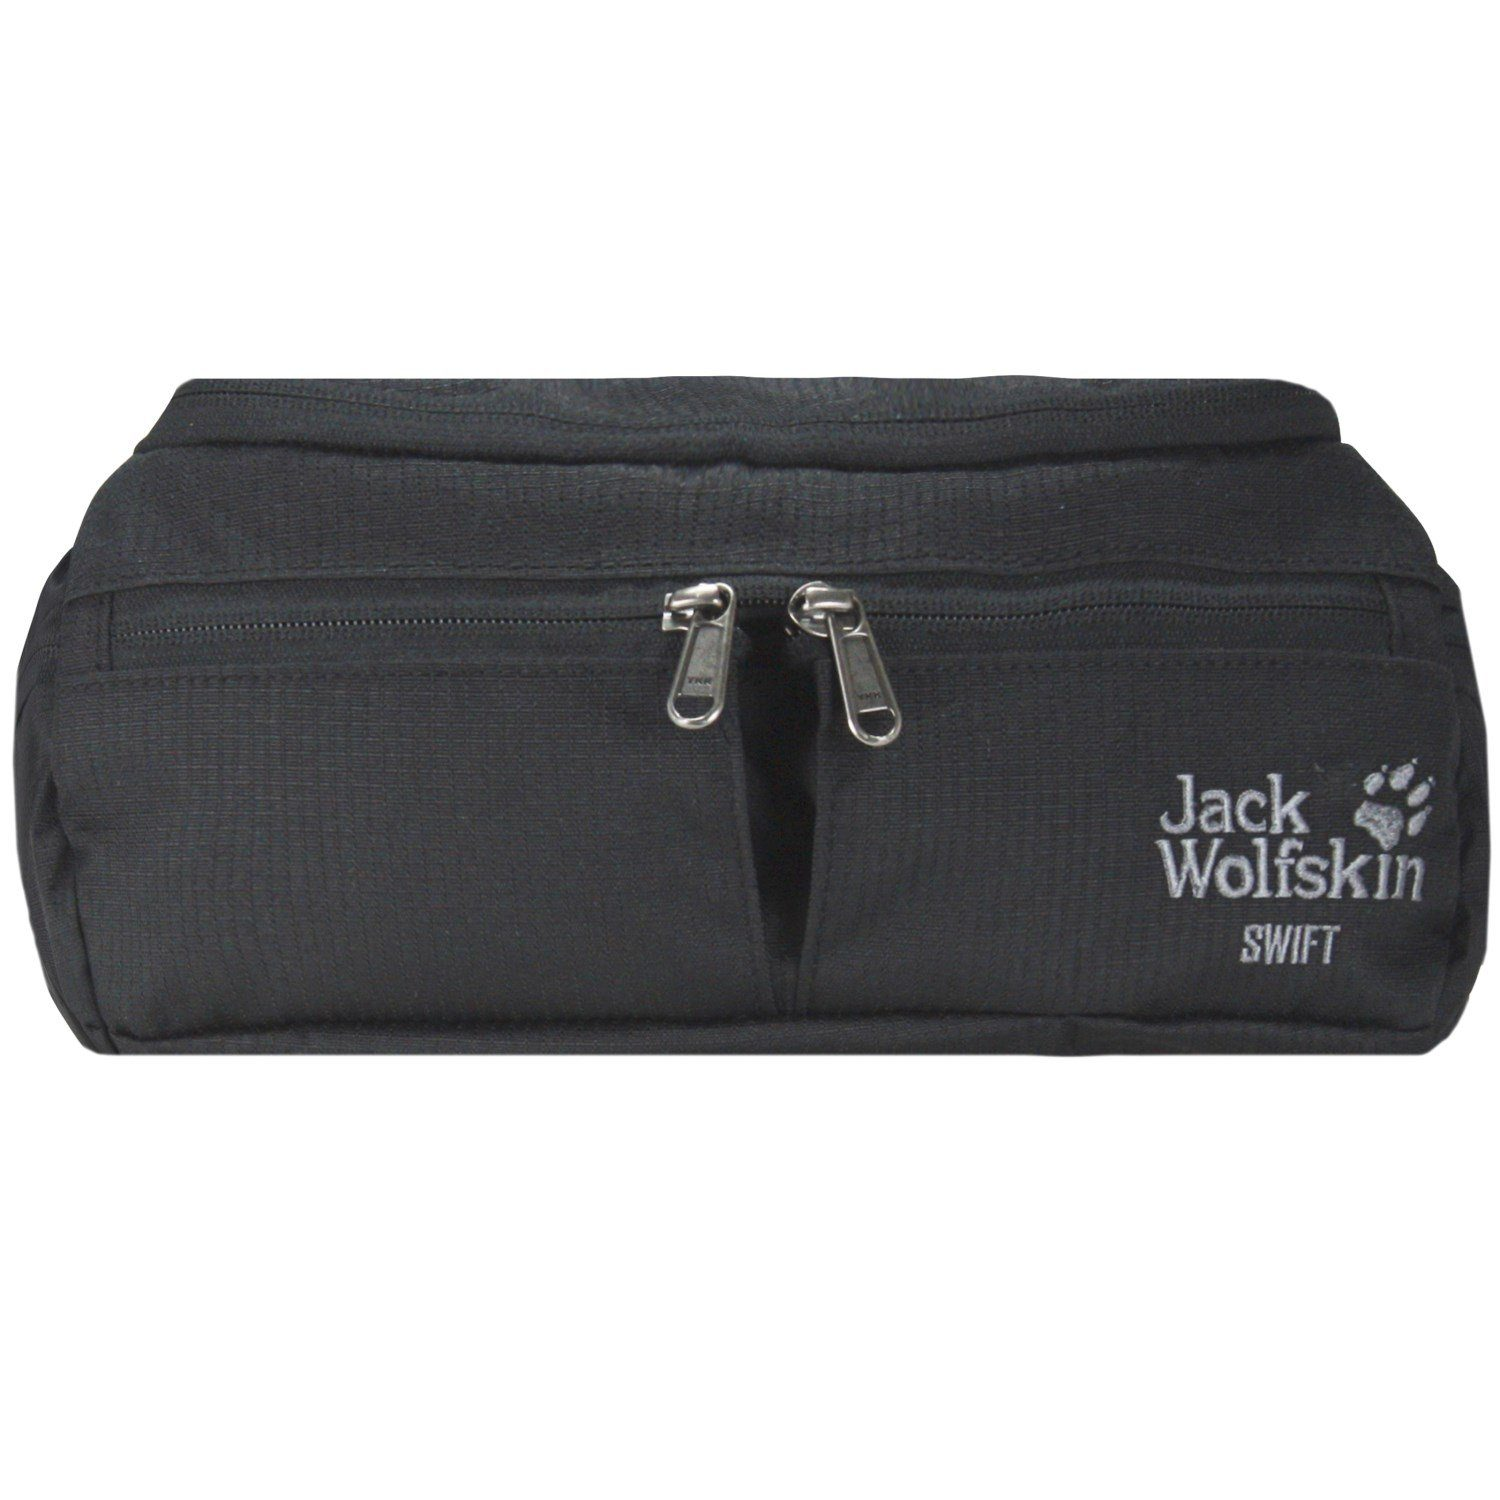 Jack Wolfskin Travel Accessories Swift Gürteltasche 52.5 cm